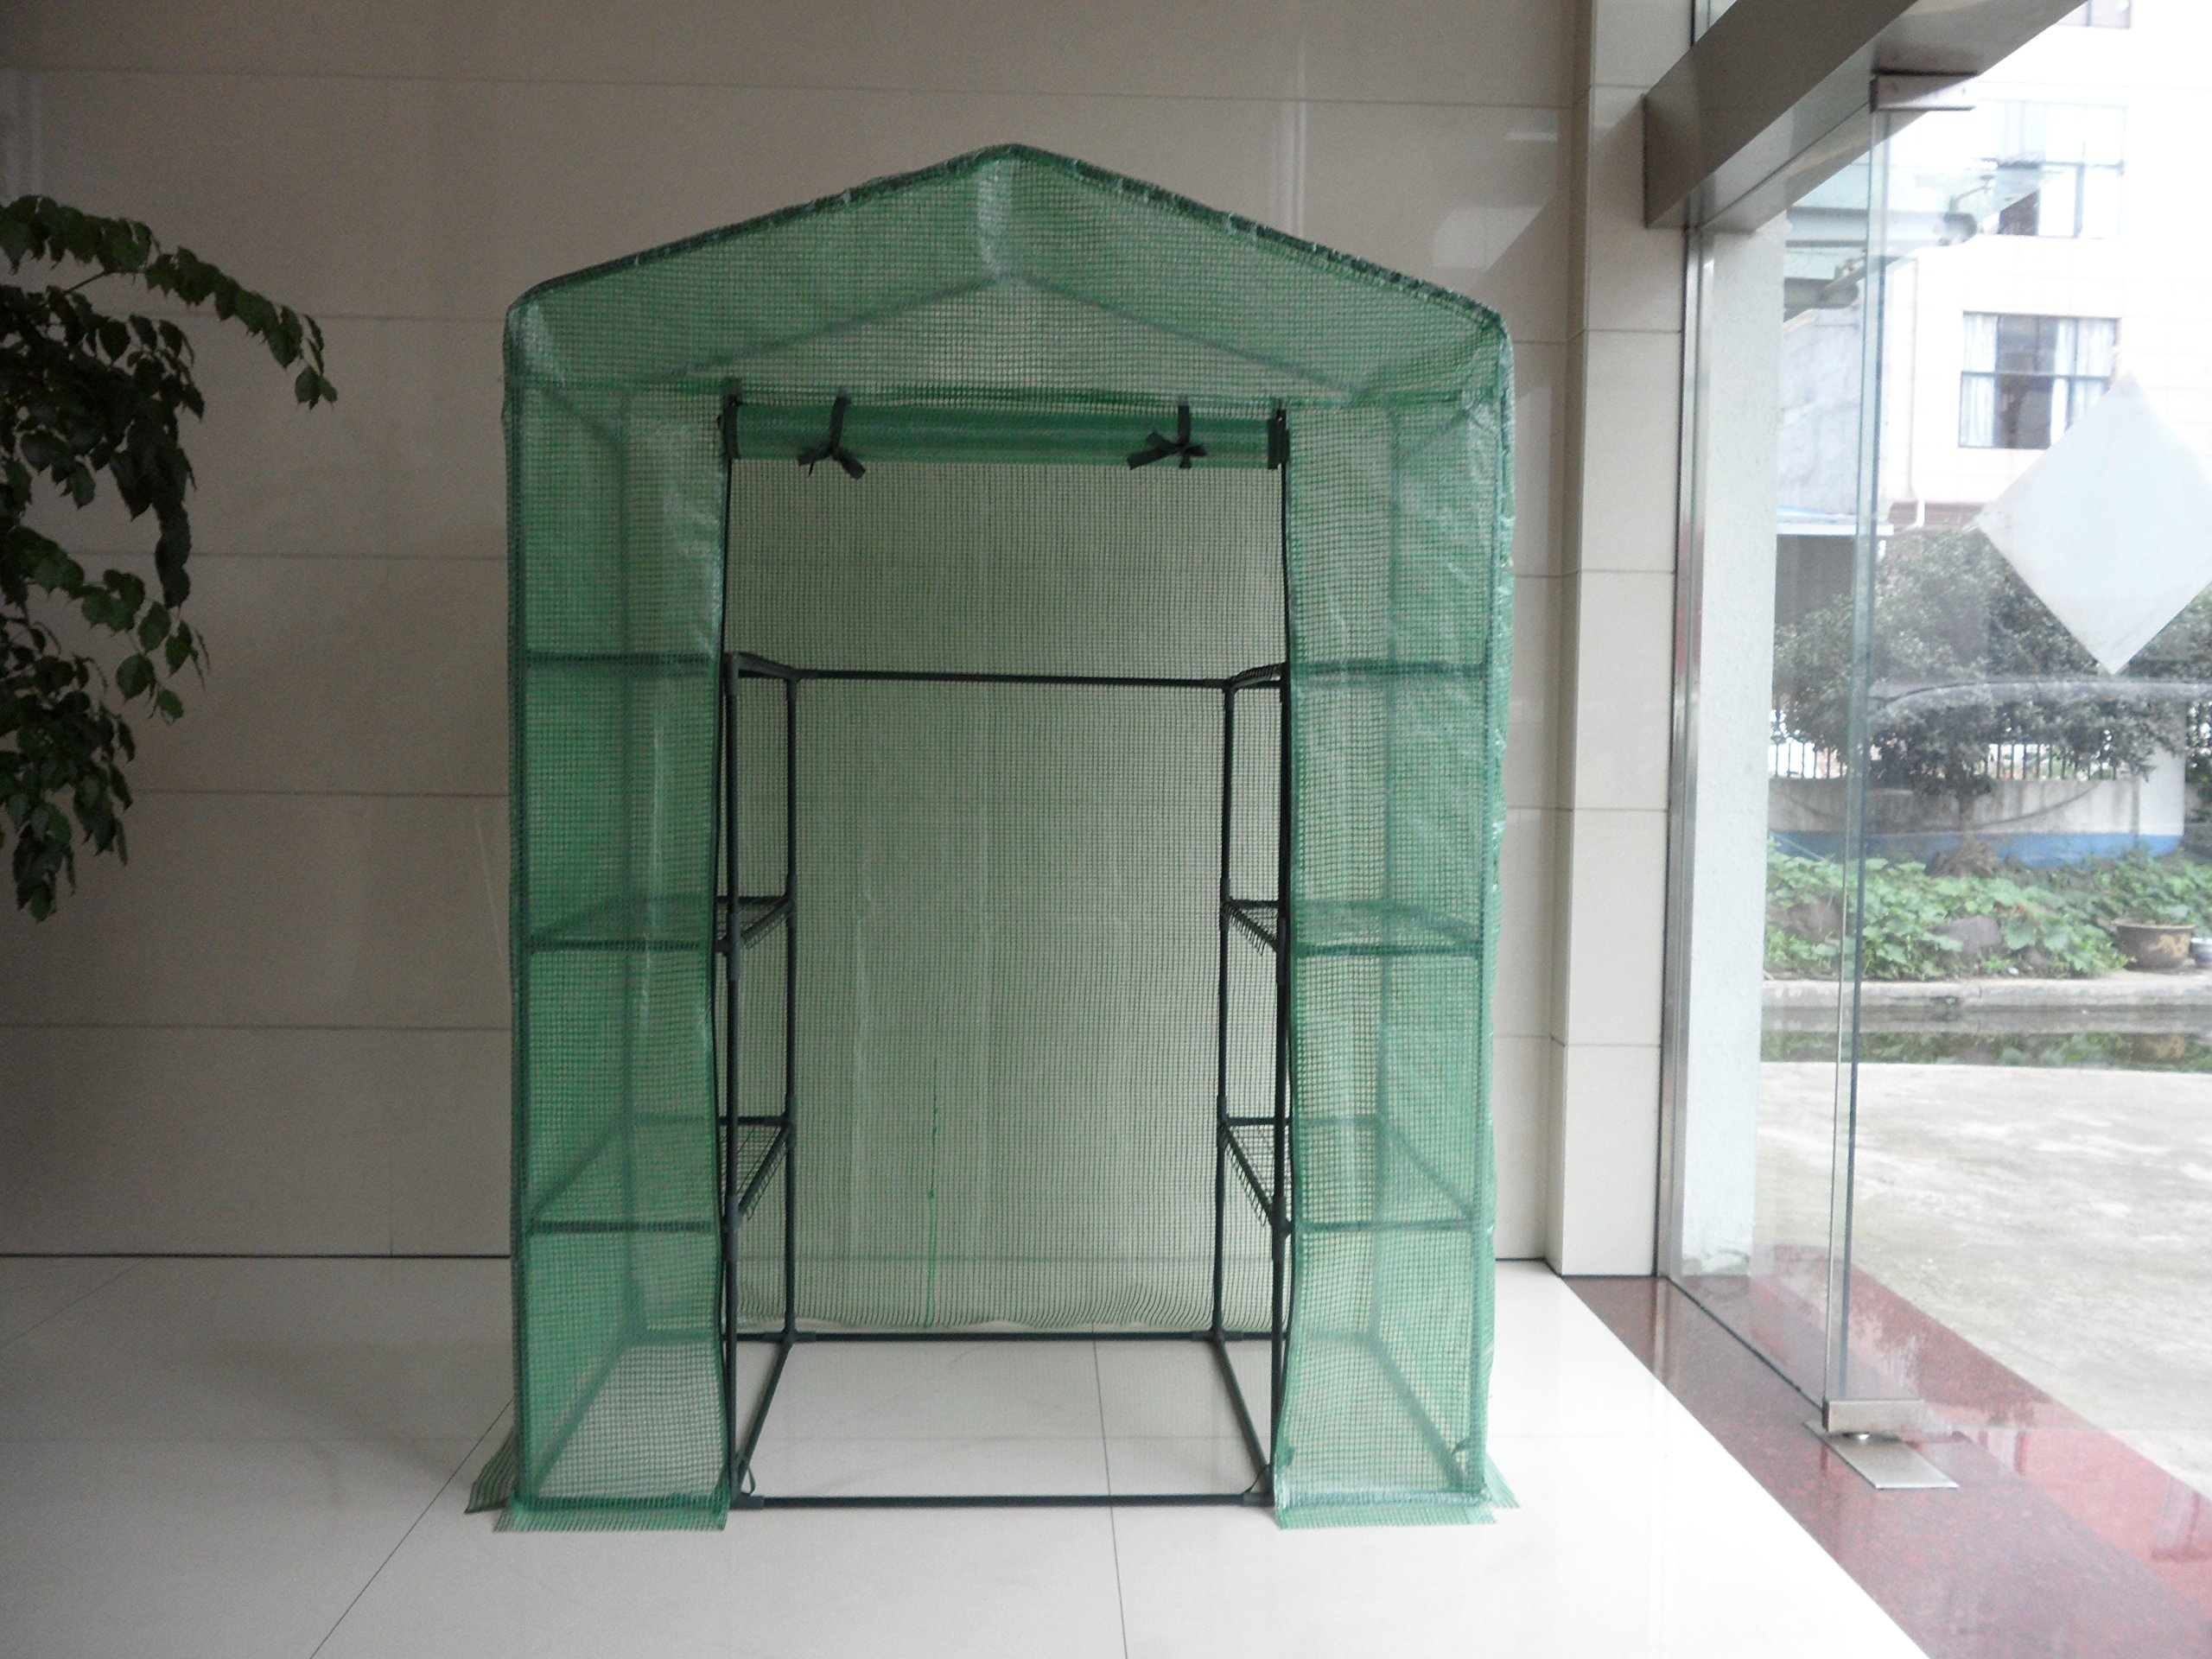 Peaktop Portable Mini Greenhouse Walk in Grow Garden Plant Growing Green House Small Hot Tent 4 Tiers 6 Shelves 78''x56''x30'' Steel Framework with Cover